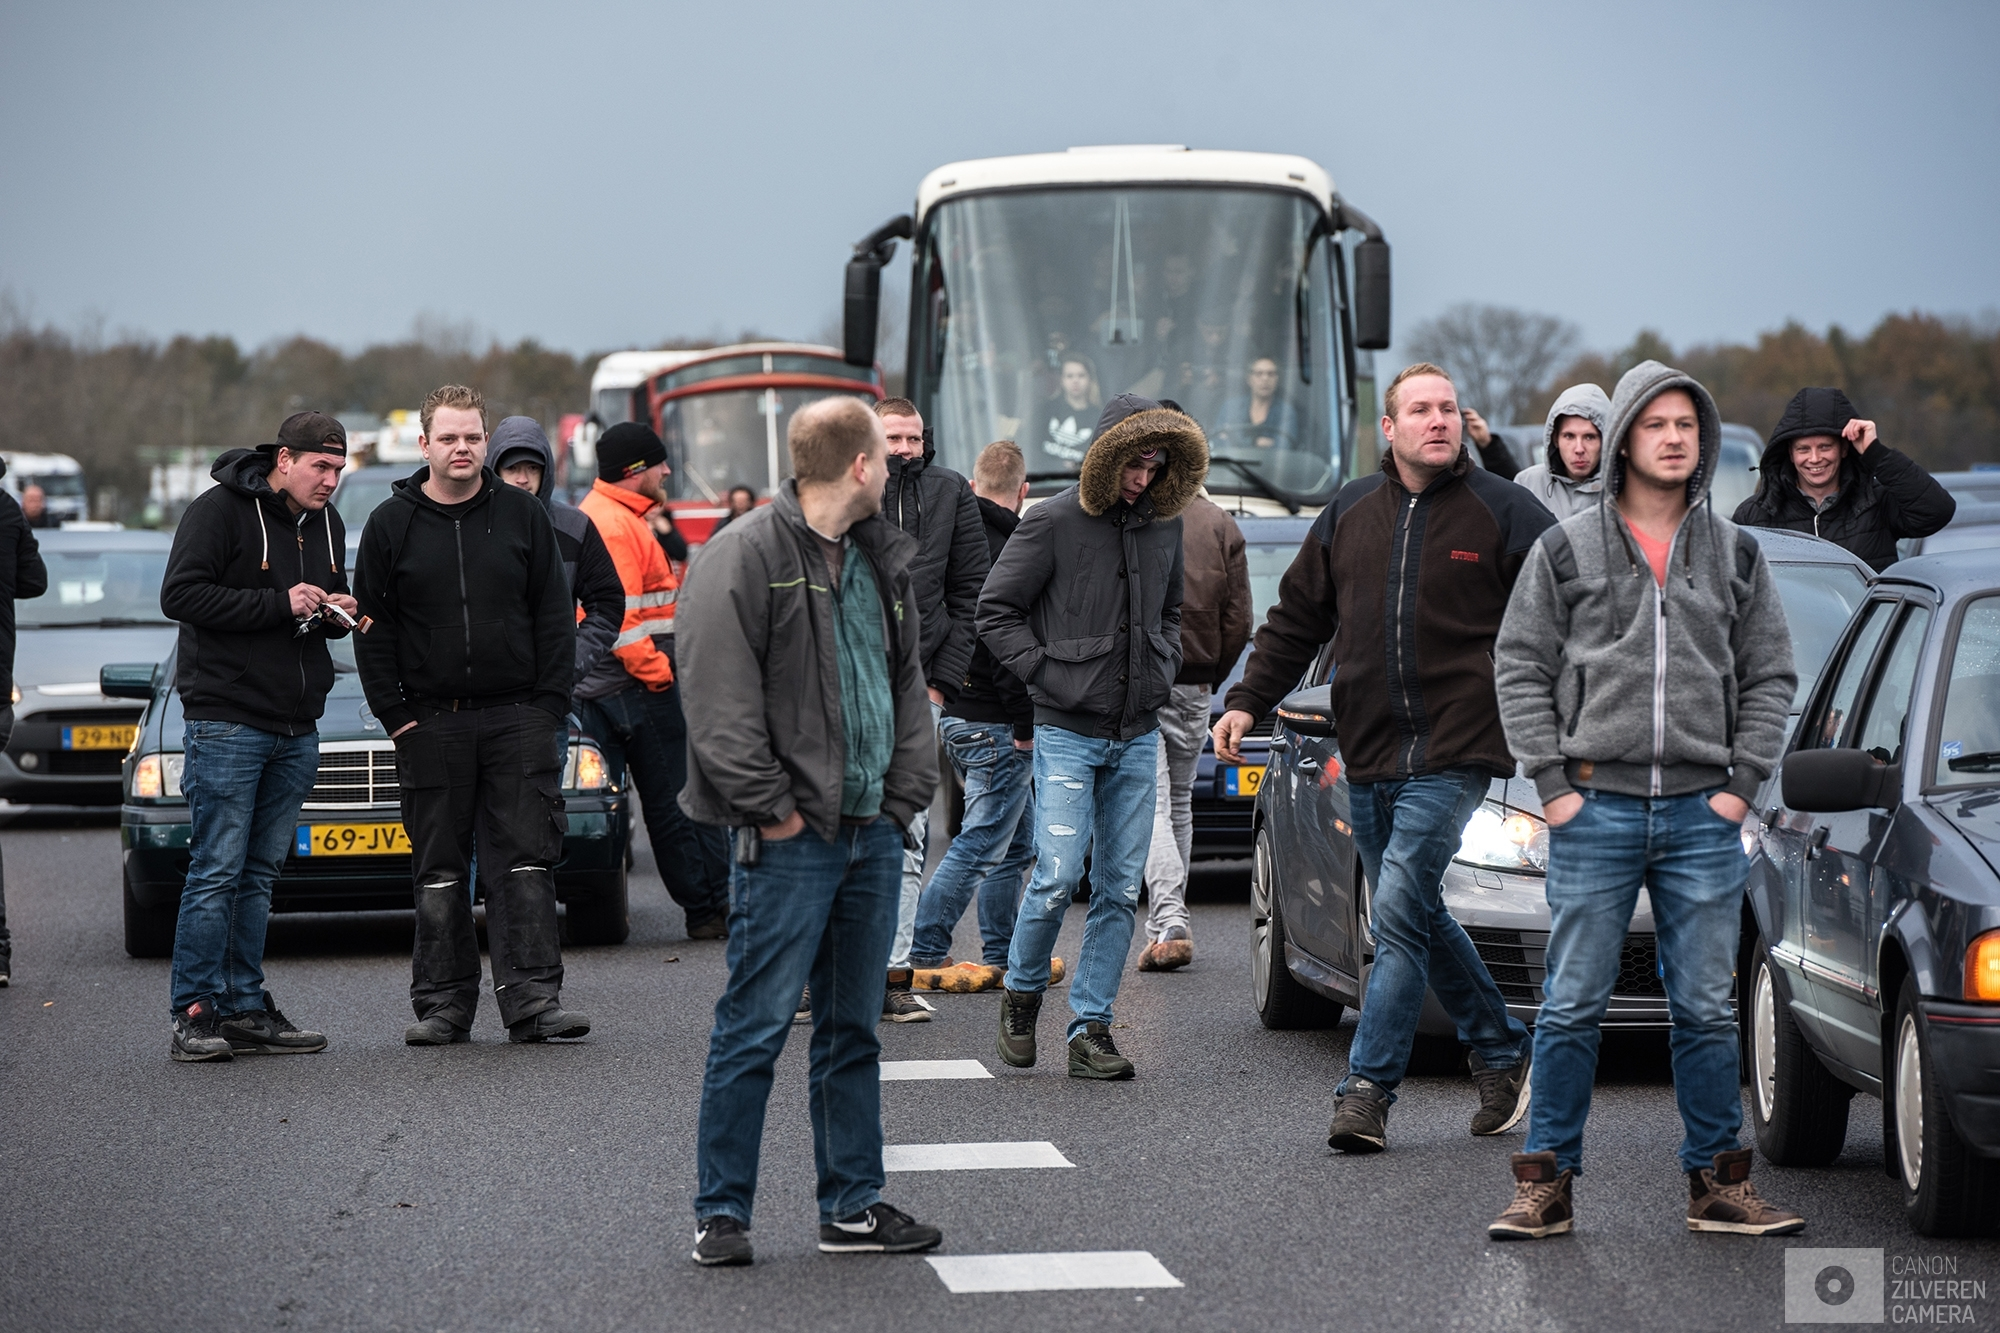 OUDEHASKE | The majority of men responsible for stopping the busses from heading towards dokkum are standing next to their cars and interacting with the media present.| #5